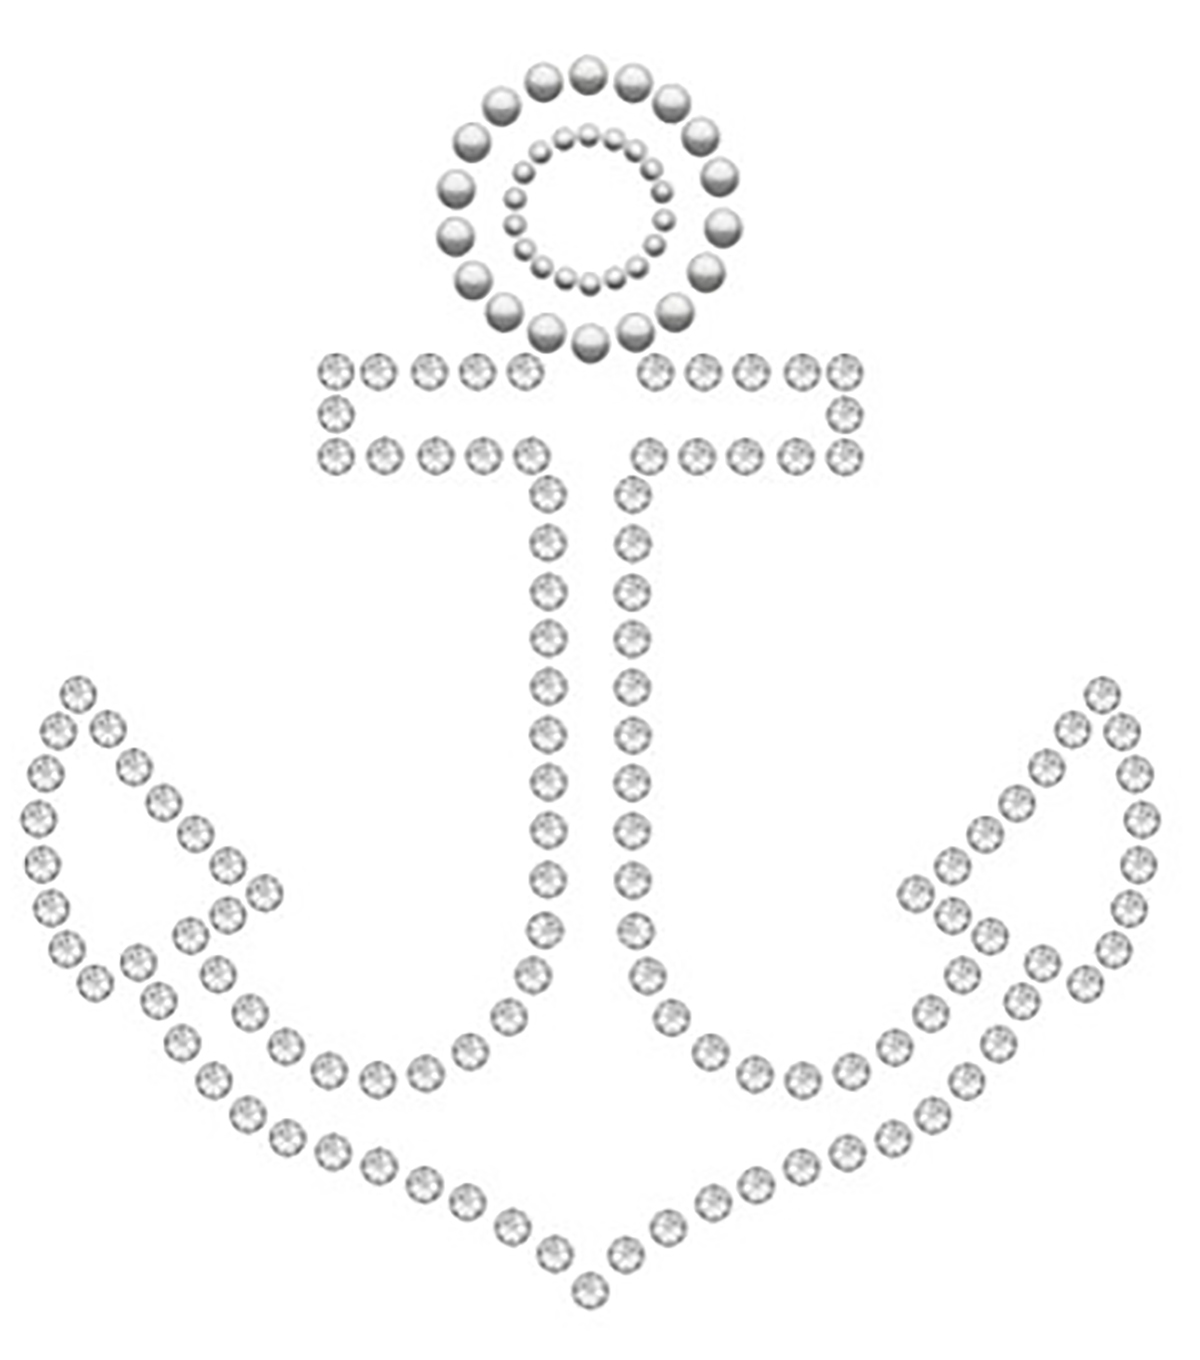 Swarovski Create Your Style Anchor Crystals Iron-on Transfer